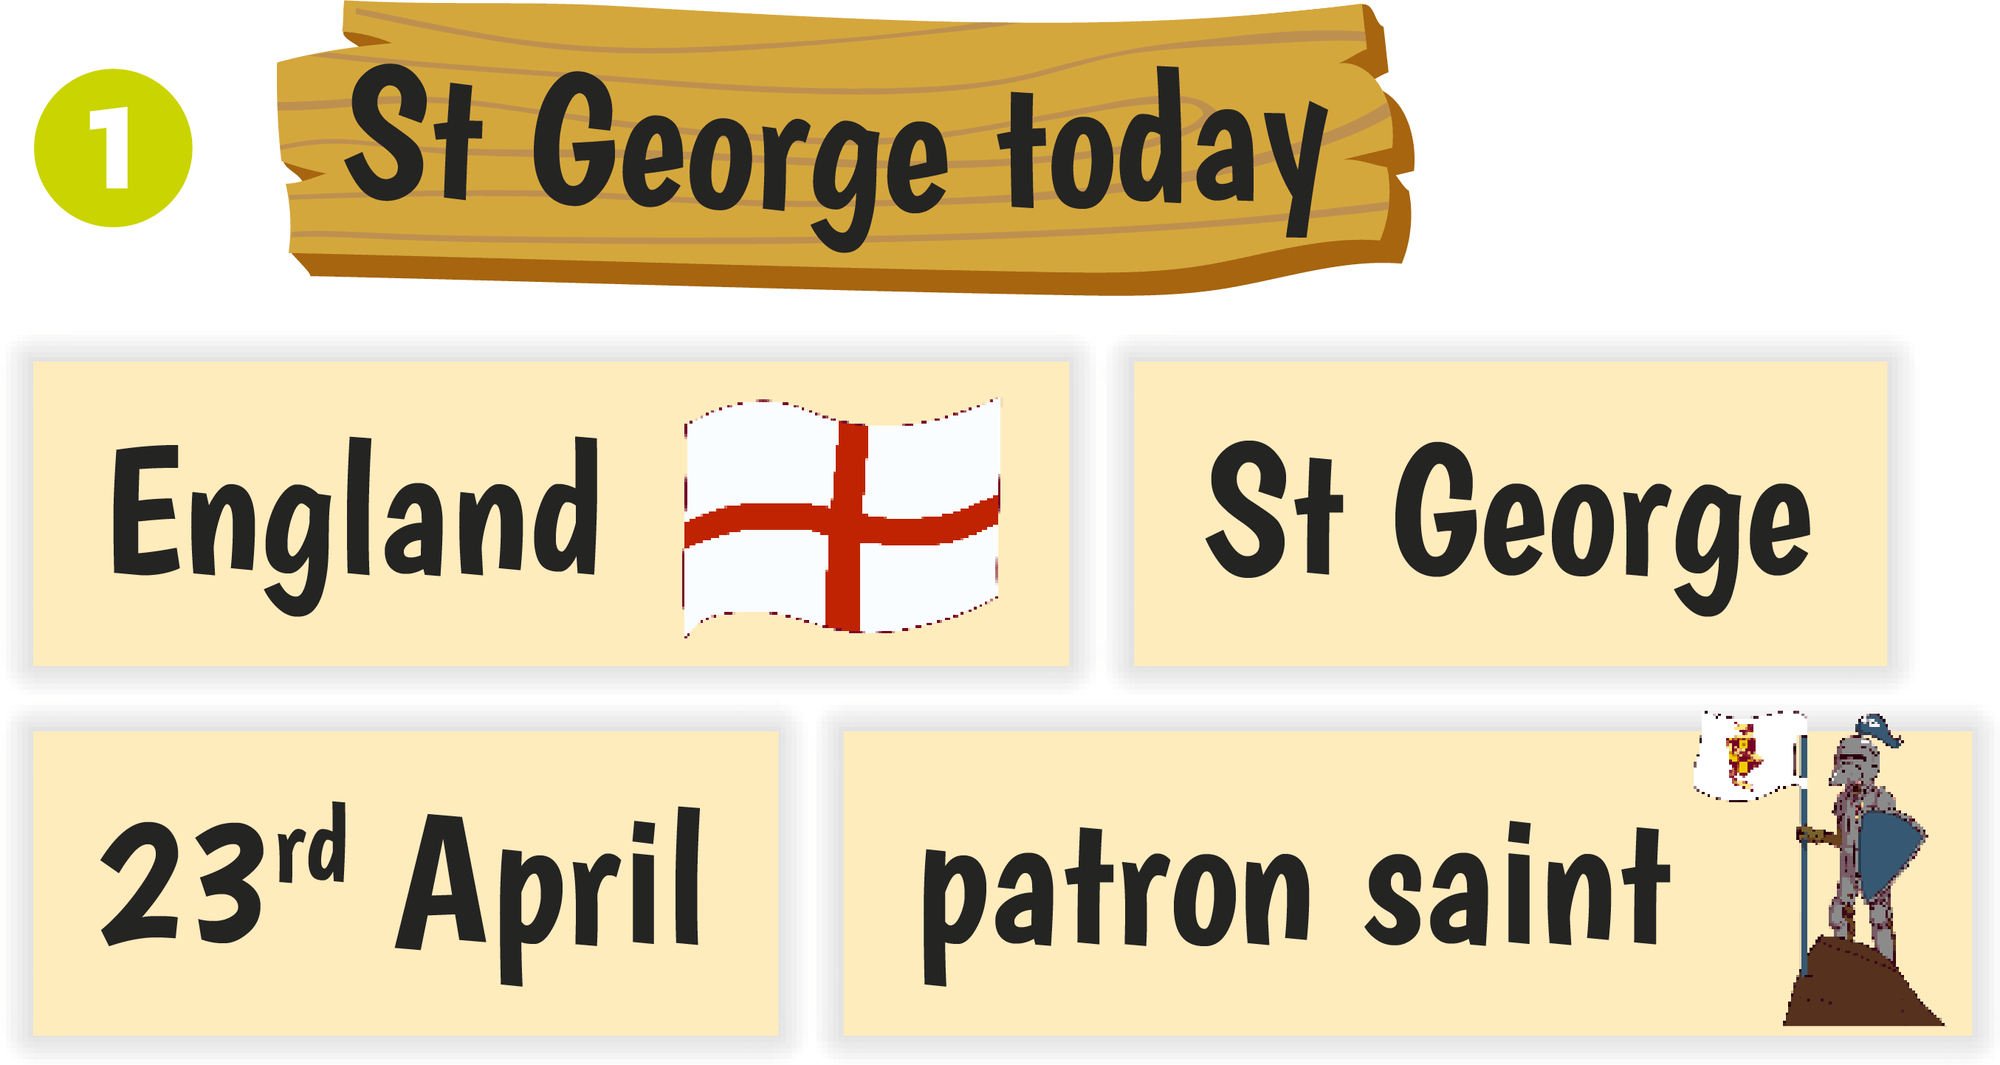 St George today